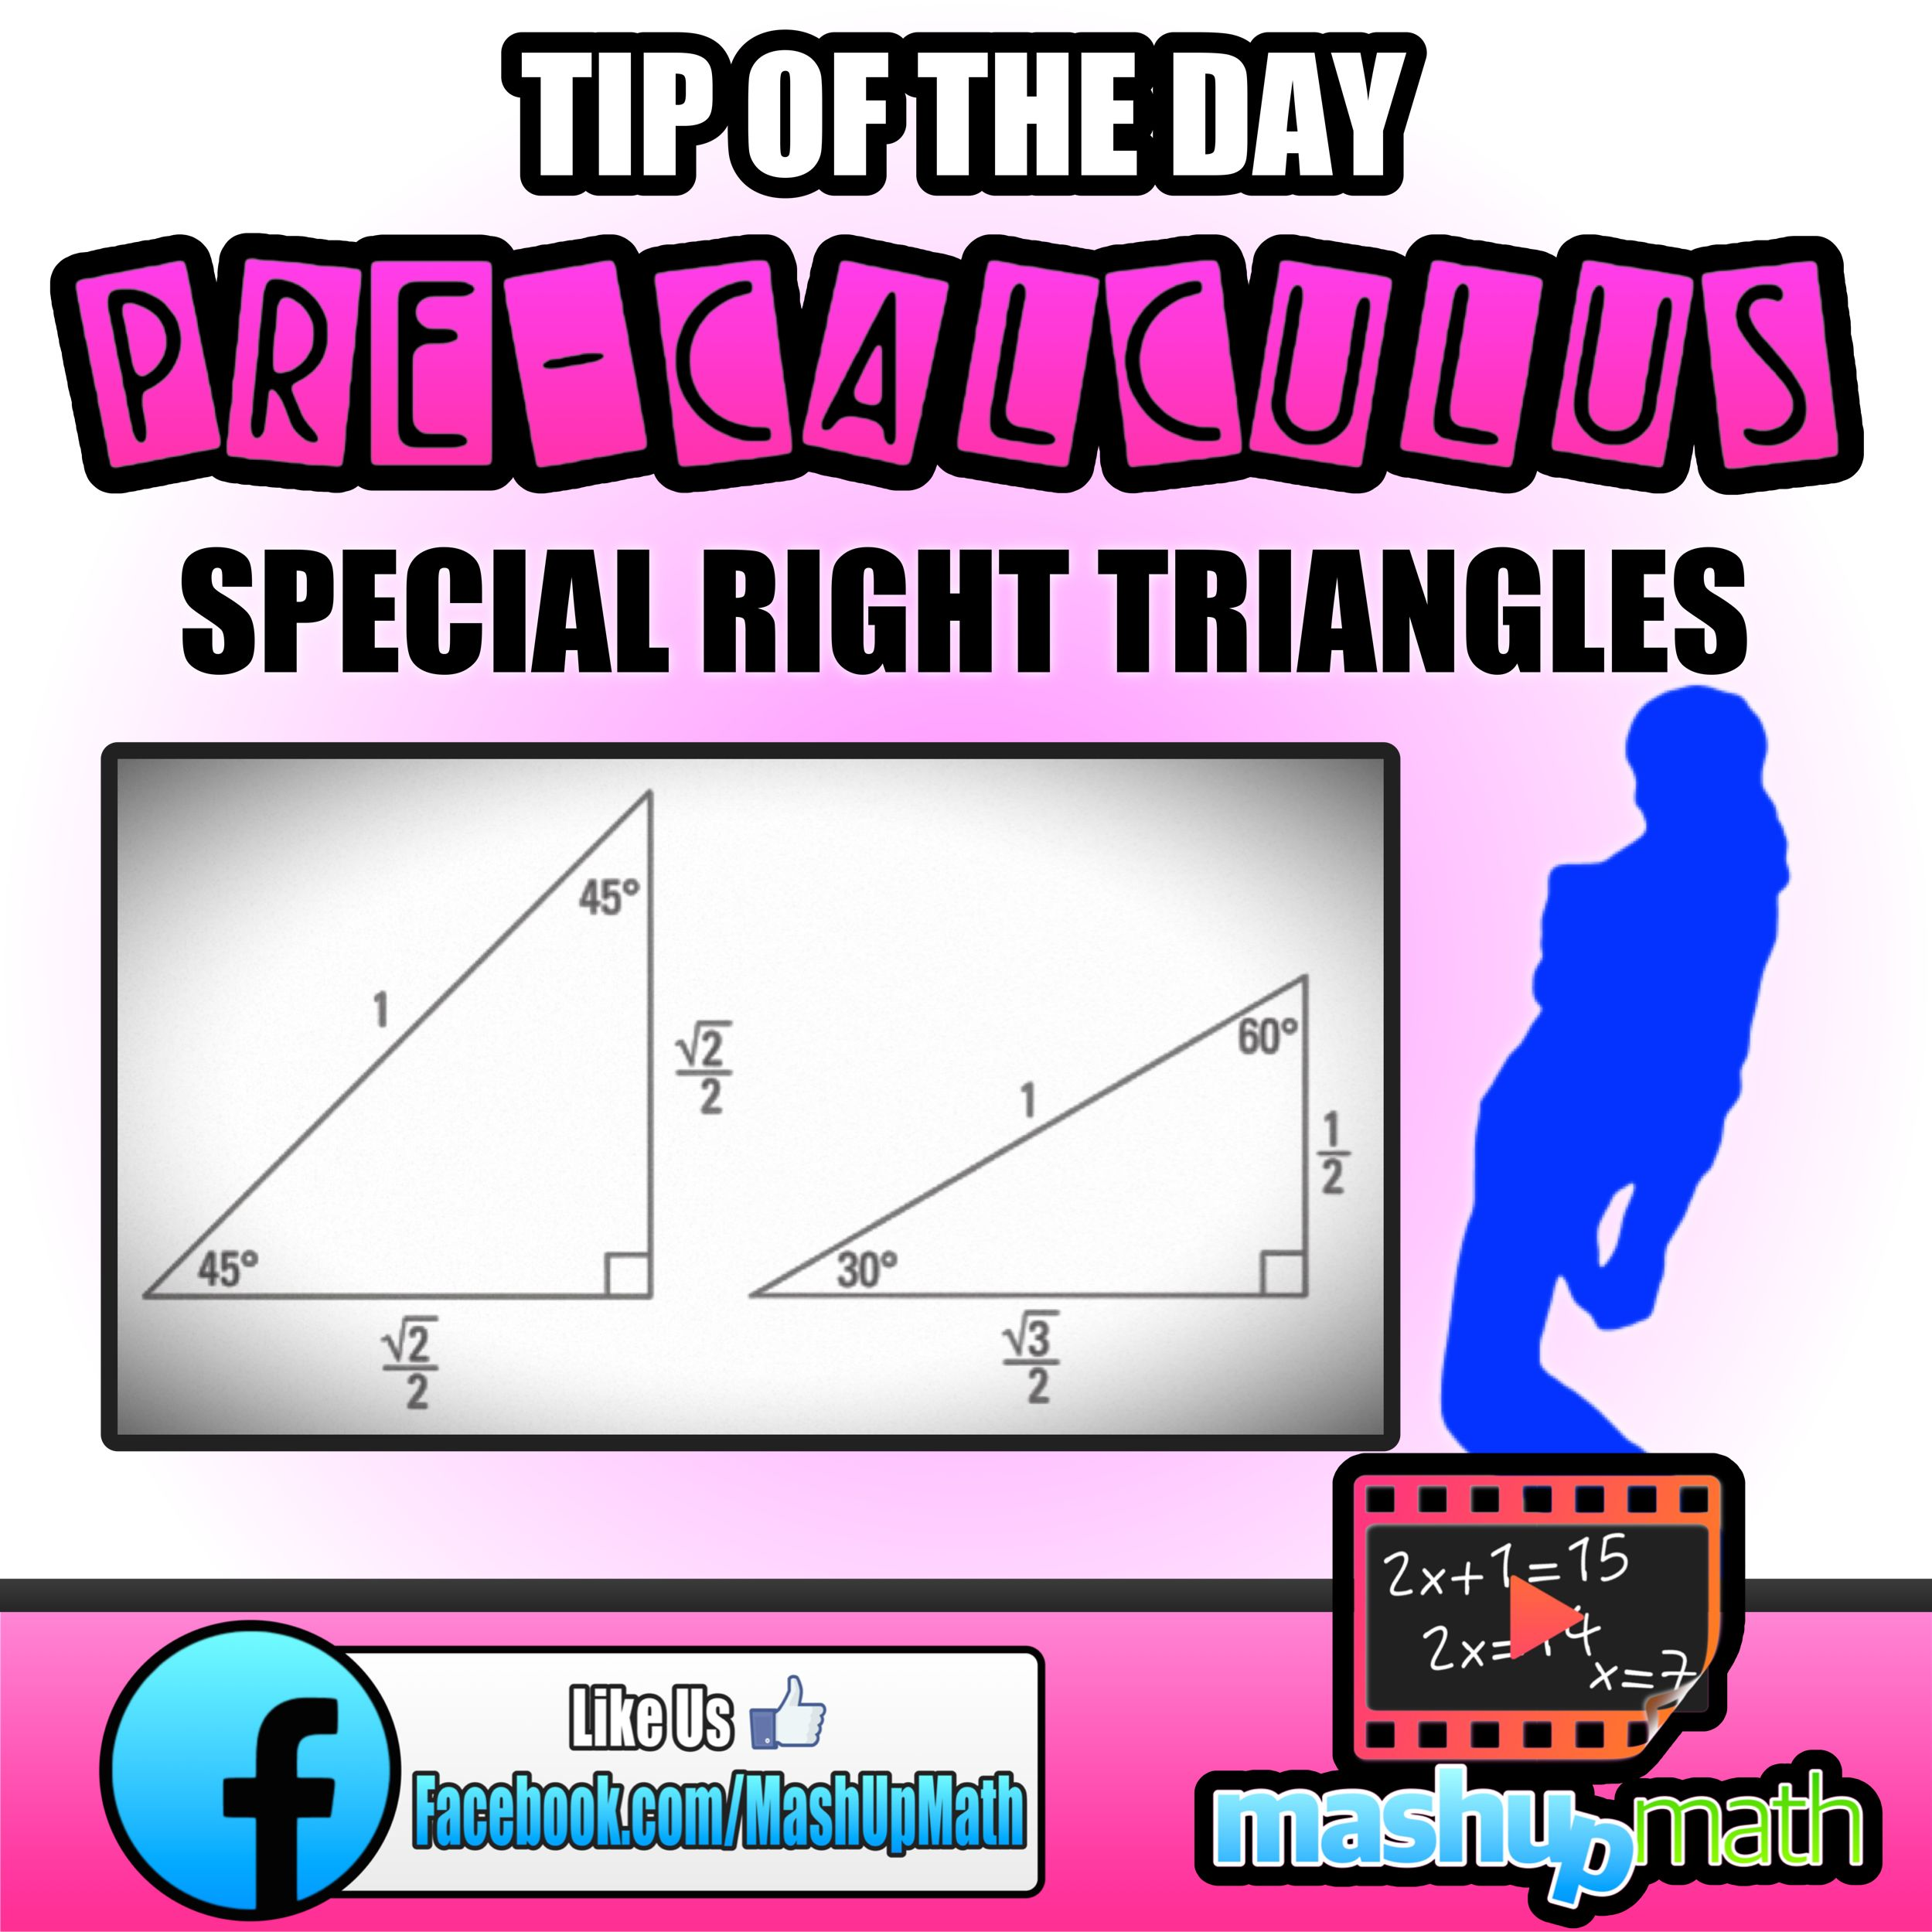 Do You Know The Special Right Triangles